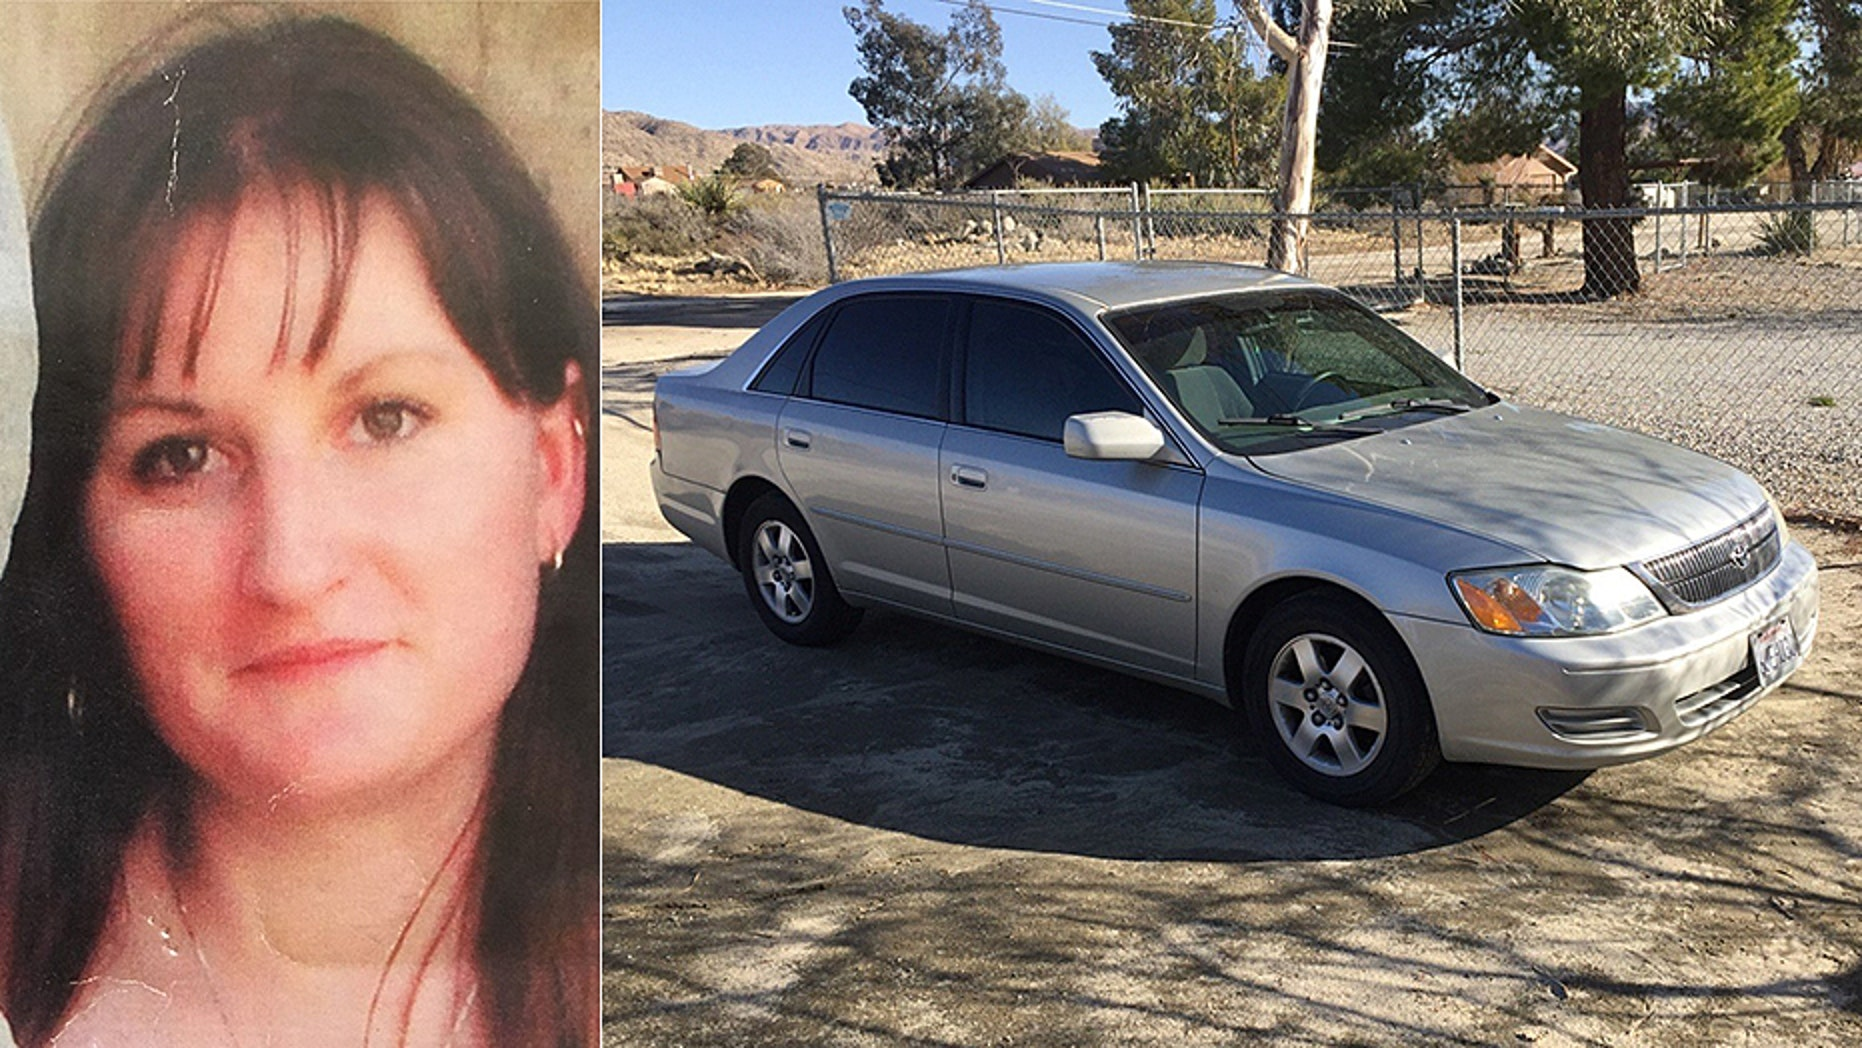 Krista Rae Bowman was 32 when she disappeared in March 2017. Her car was found recently in New Mexico.